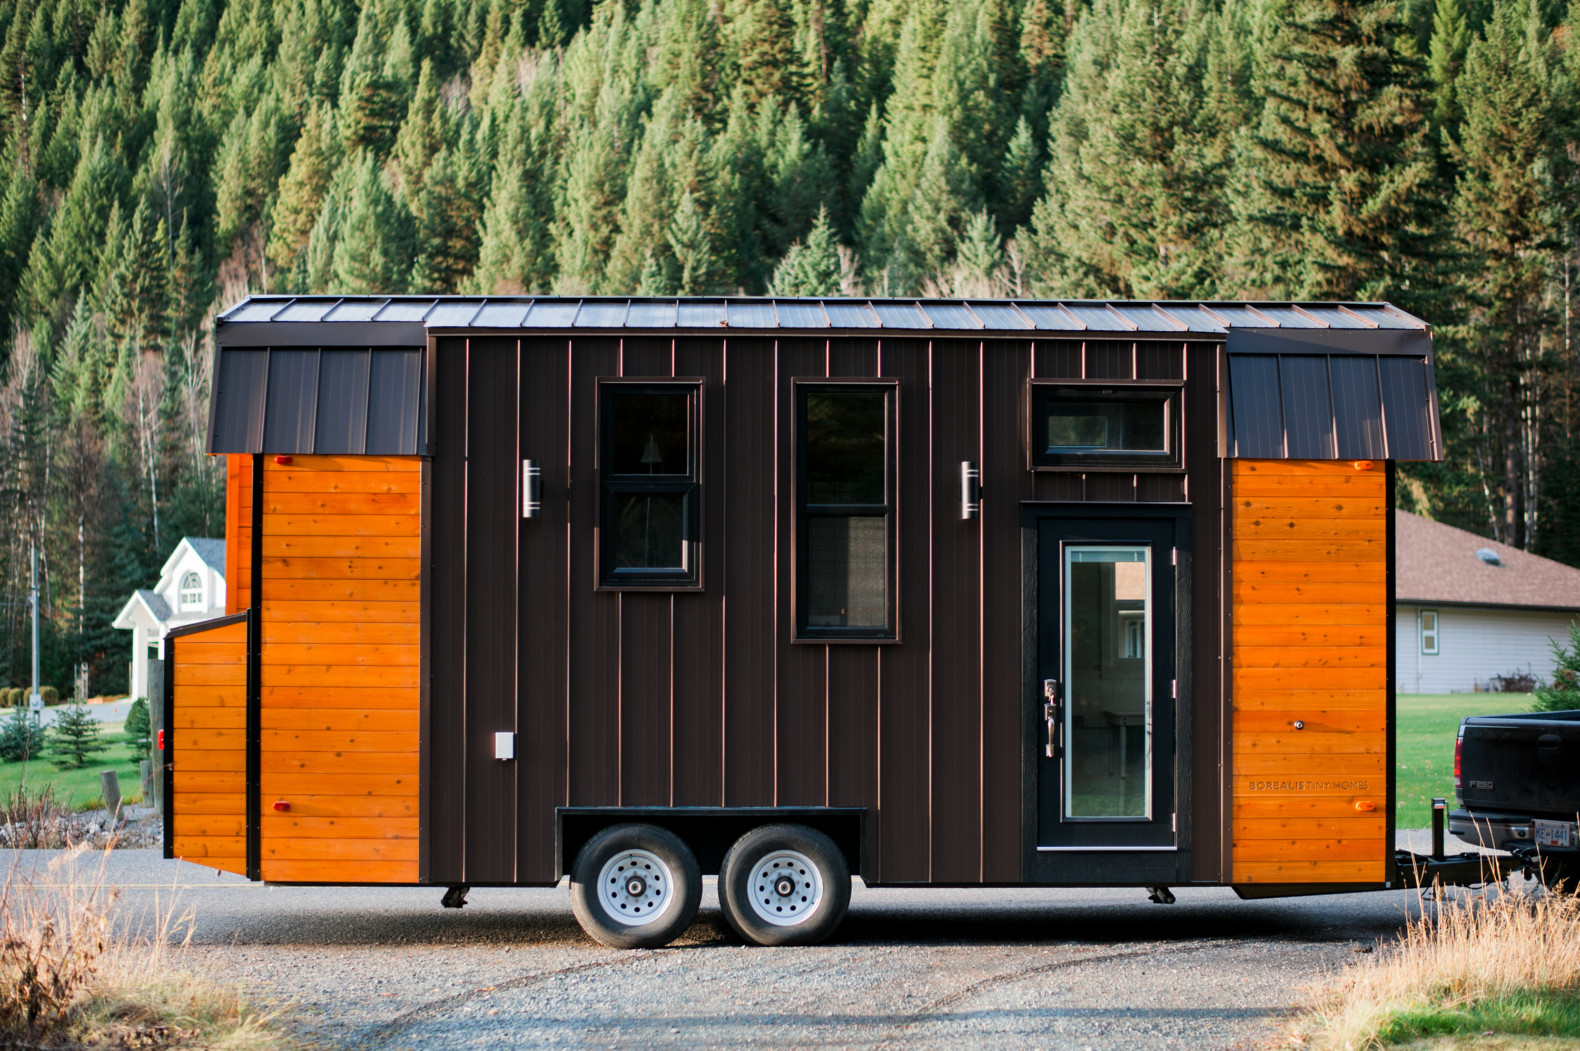 The energy-efficient Aspen tiny home is built tough to withstand Canadian winters